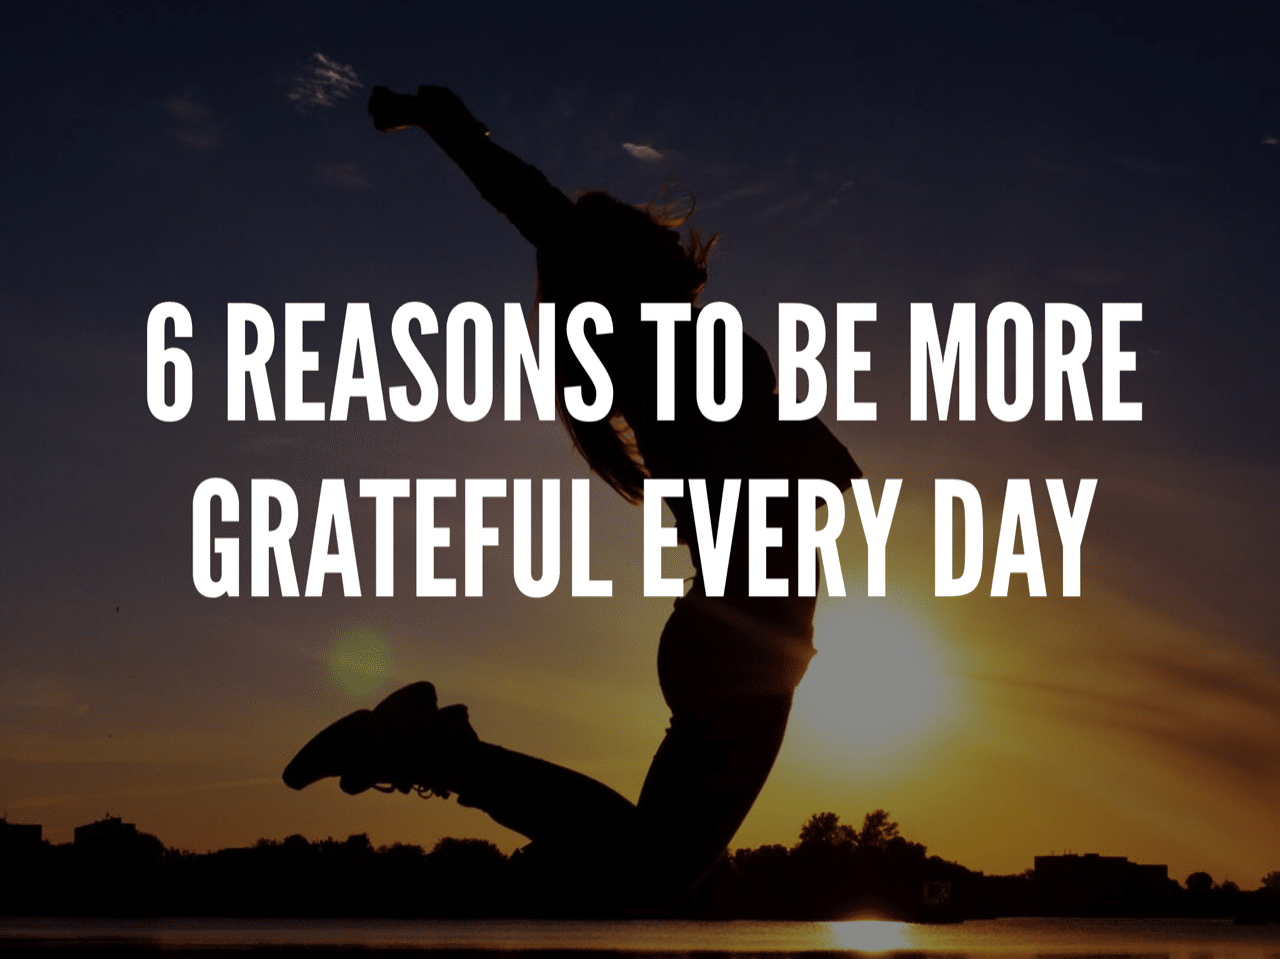 6 Reasons to Be More Grateful Every Day